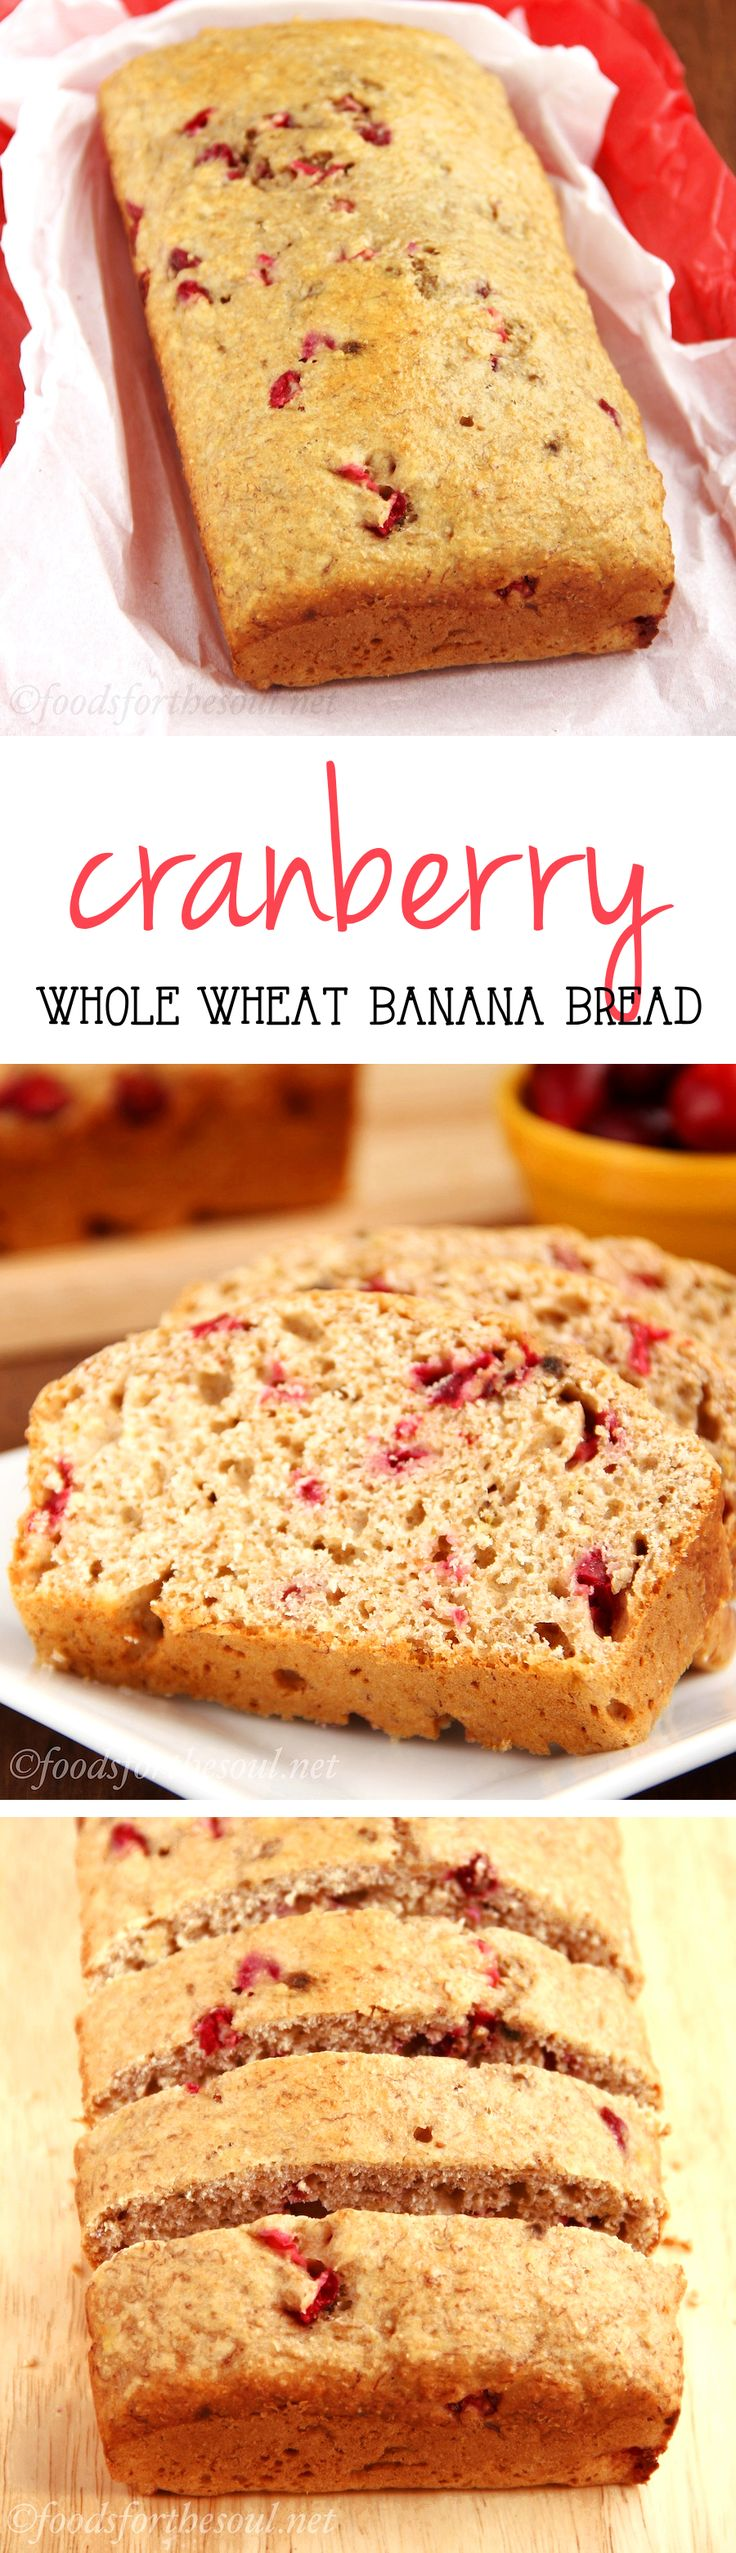 Healthy Whole Wheat Cranberry Banana Bread -- this easy breakfast recipe is perfect for Christmas morning! It's naturally sweetened & one of my family's favorites!